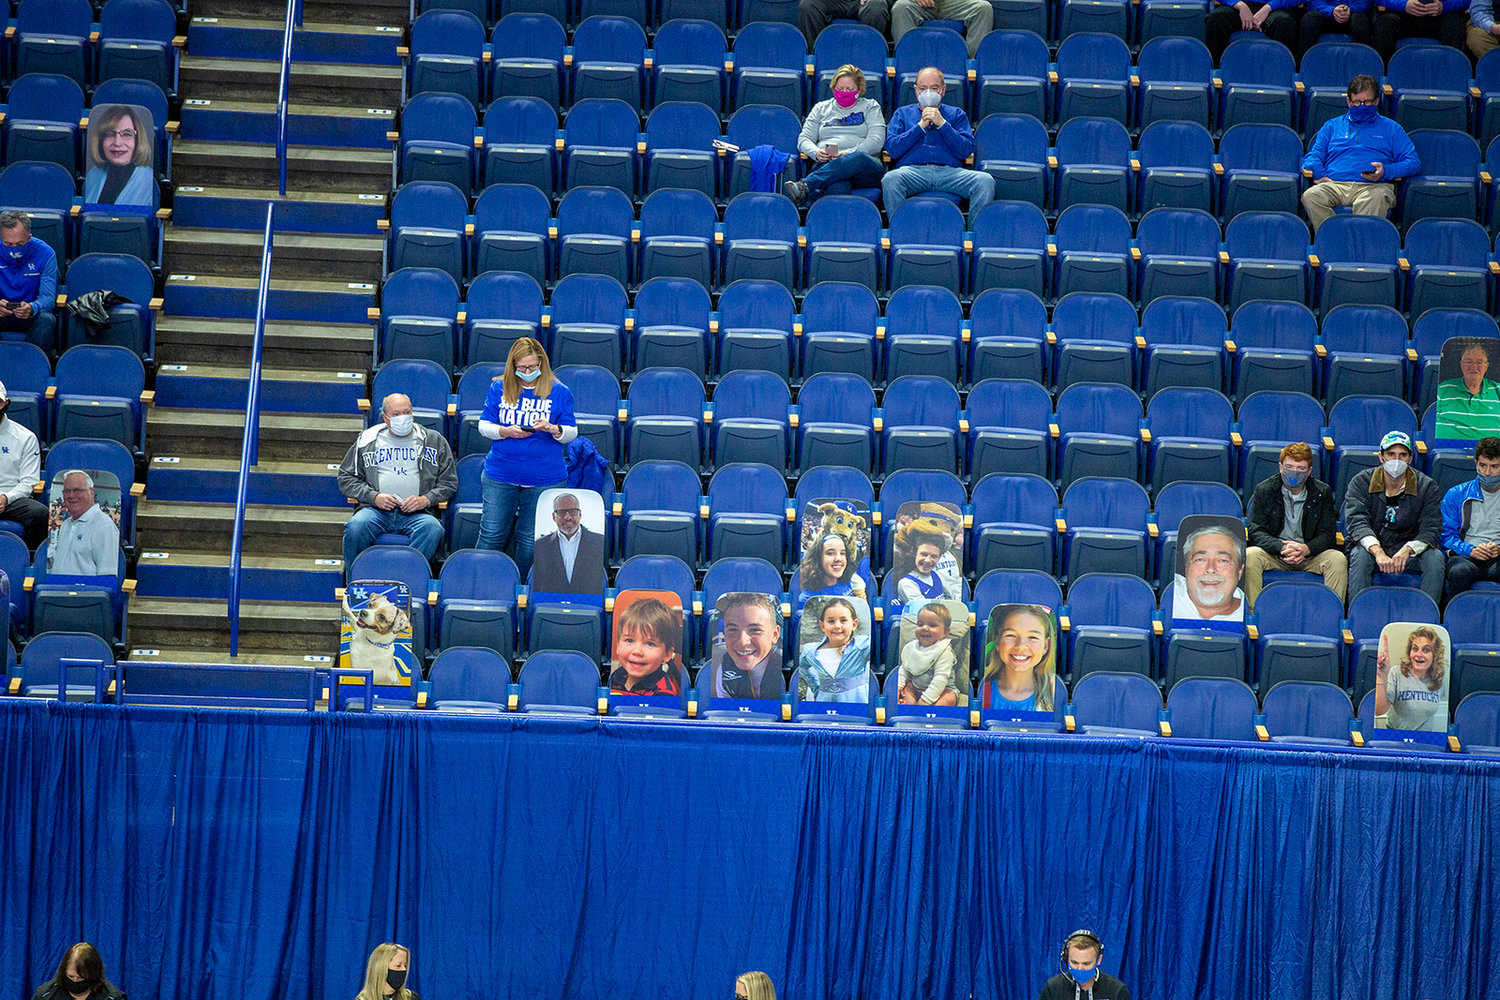 A socially distanced crowd with some cardboard cutouts on Sunday, Nov. 29, 2020, in Lexington. Ky. (Kentucky Today/Tammie Brown)